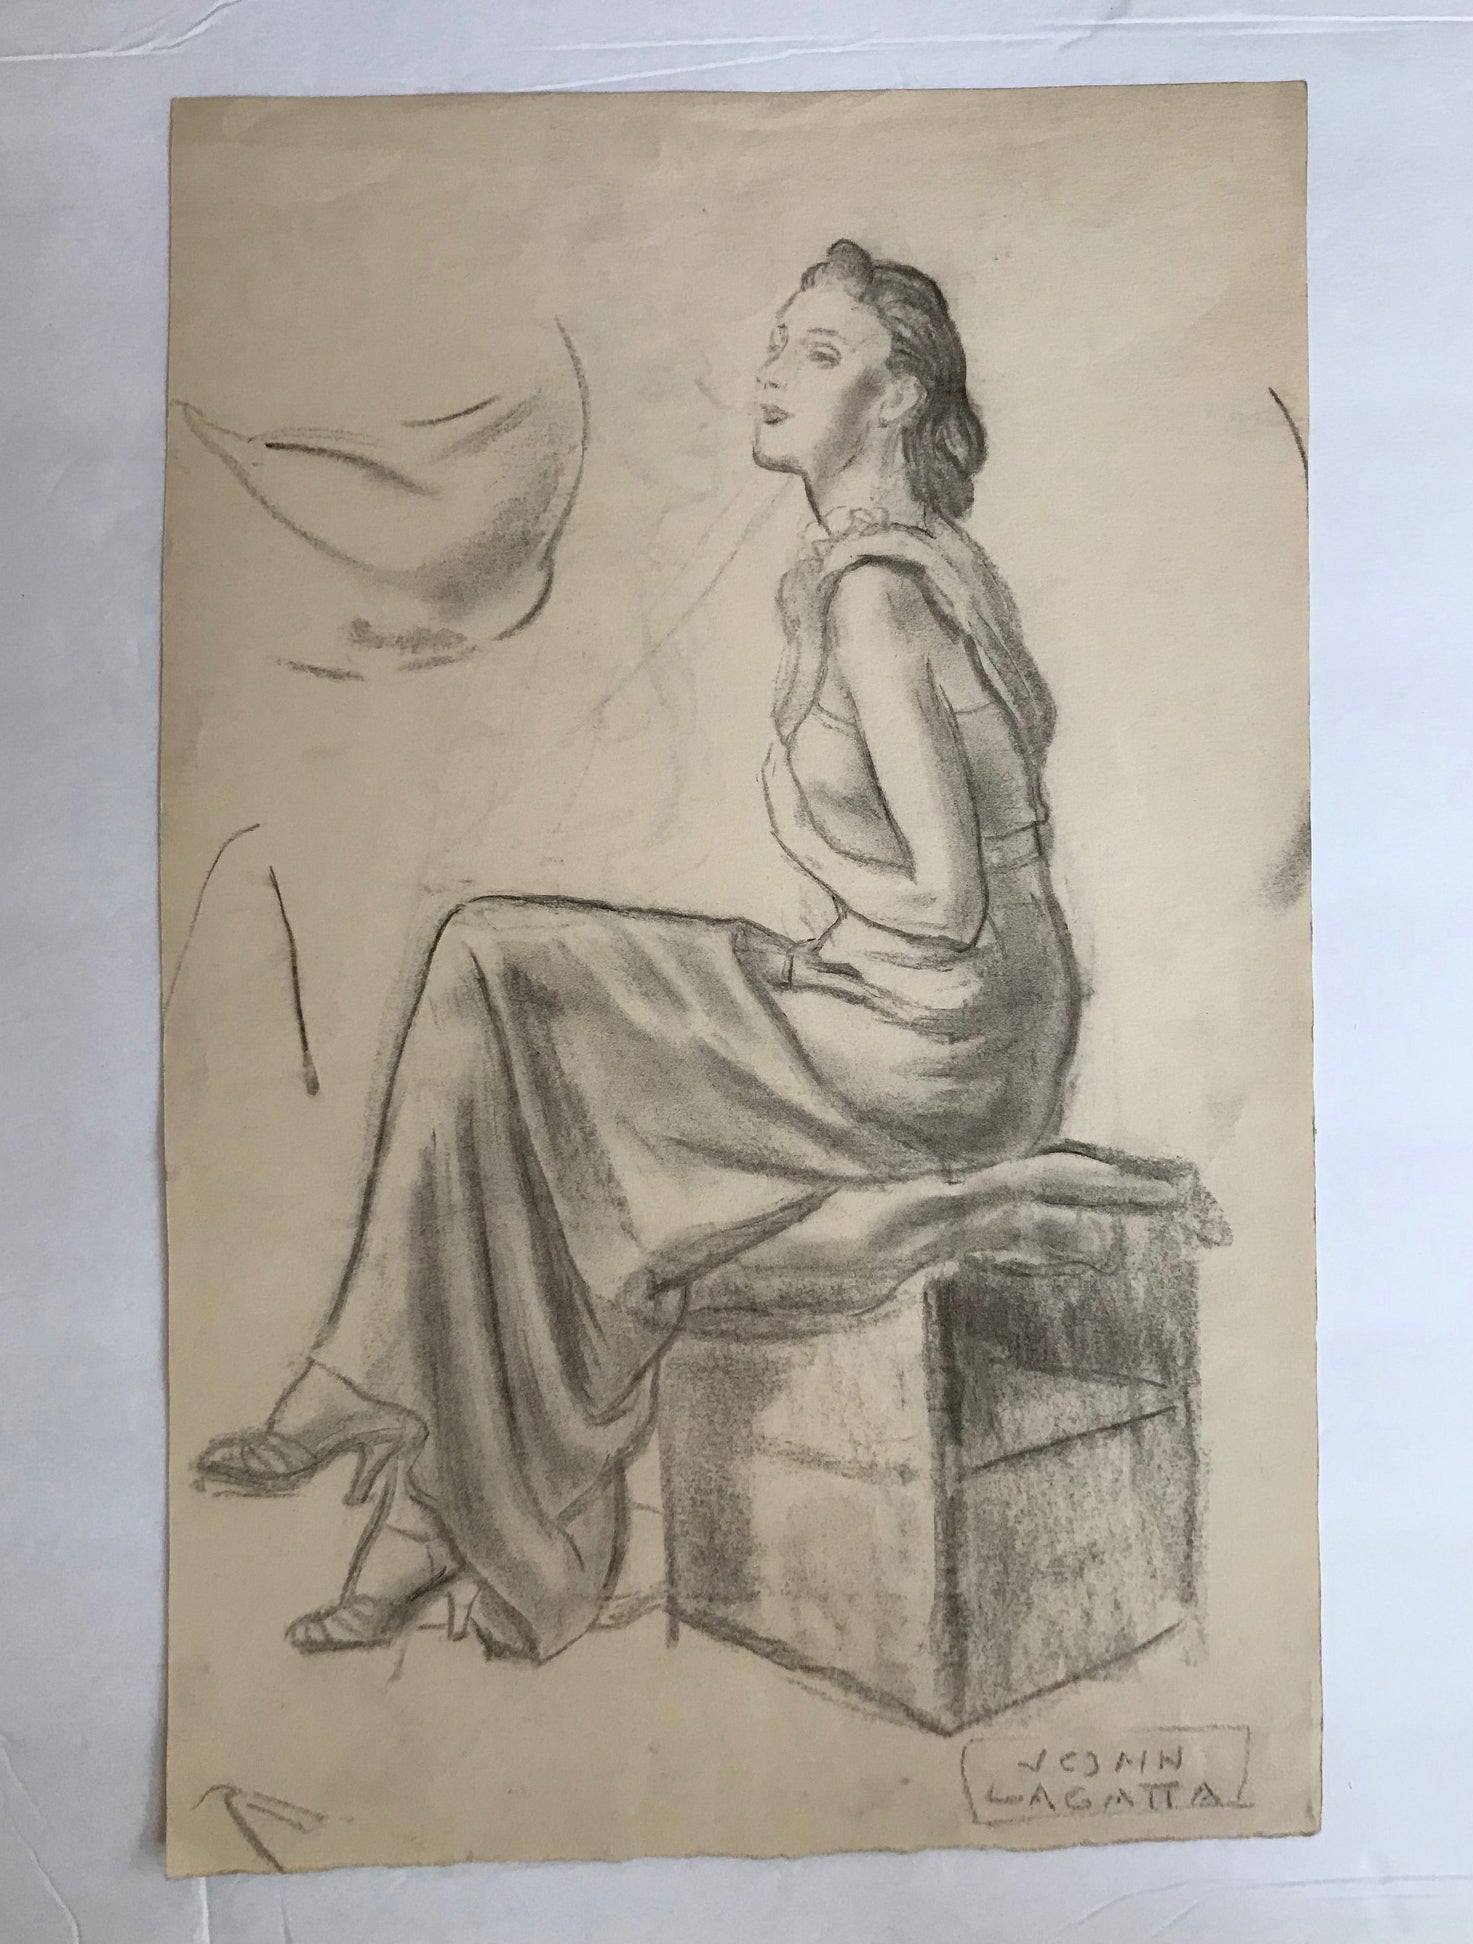 John Lagatta, Untitled: Seated Lady, Early to Mid 20th Century